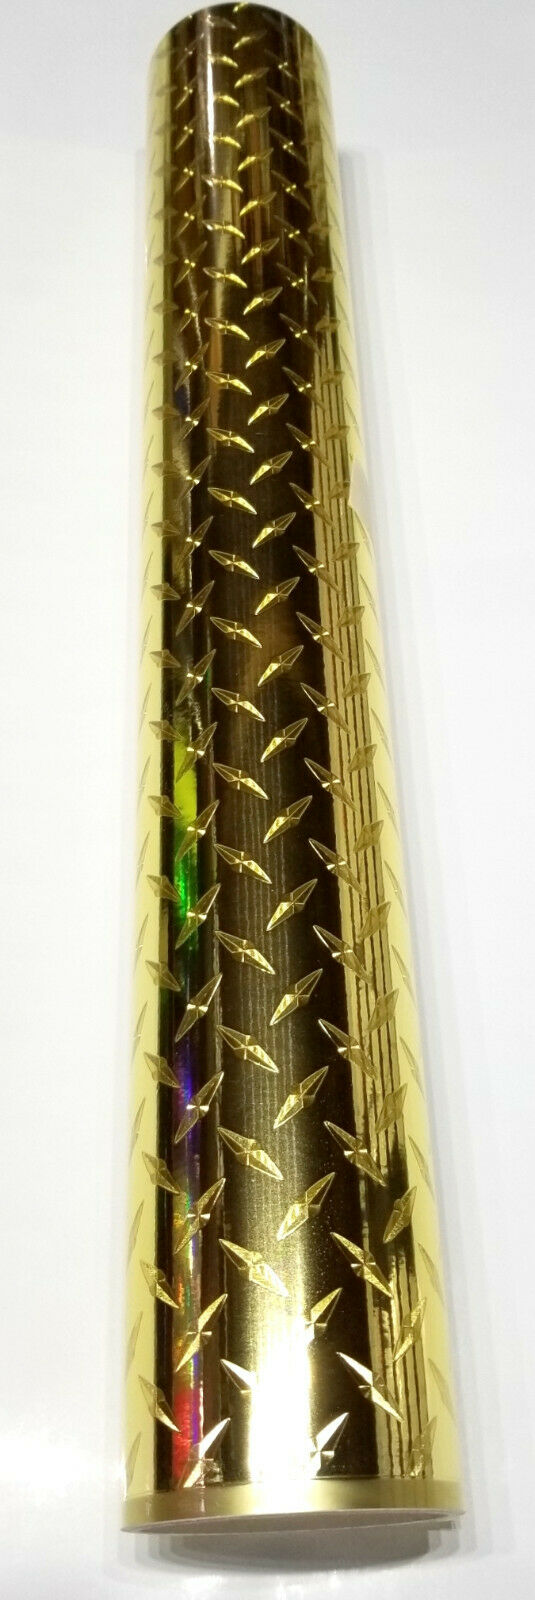 "24"" x 6 foot Gold Diamond Plate"